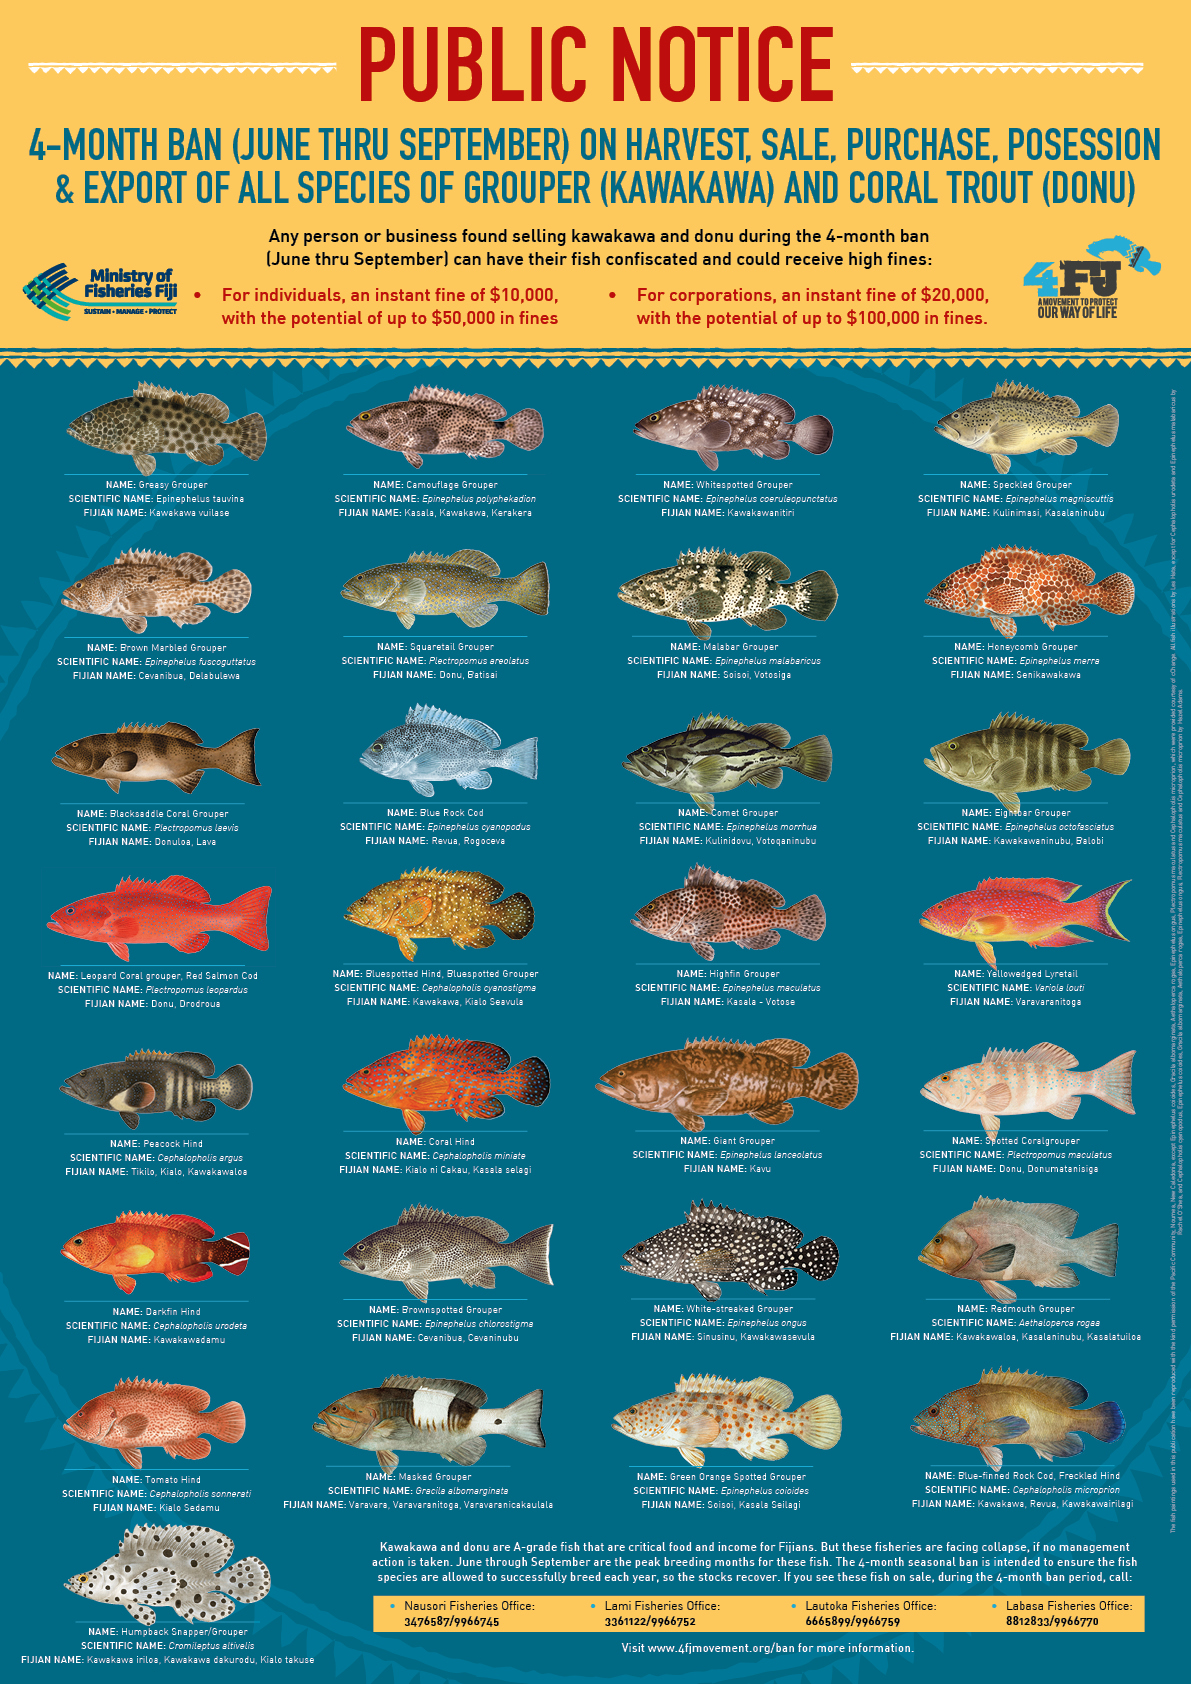 To download a printable version of outreach materials on the ban, click:  A4 Factsheet ;  A4 Fish Guide ; and  A2 Fish Poster . You can also contract your nearest Ministry of Fisheries Office for printed copies of these materials.